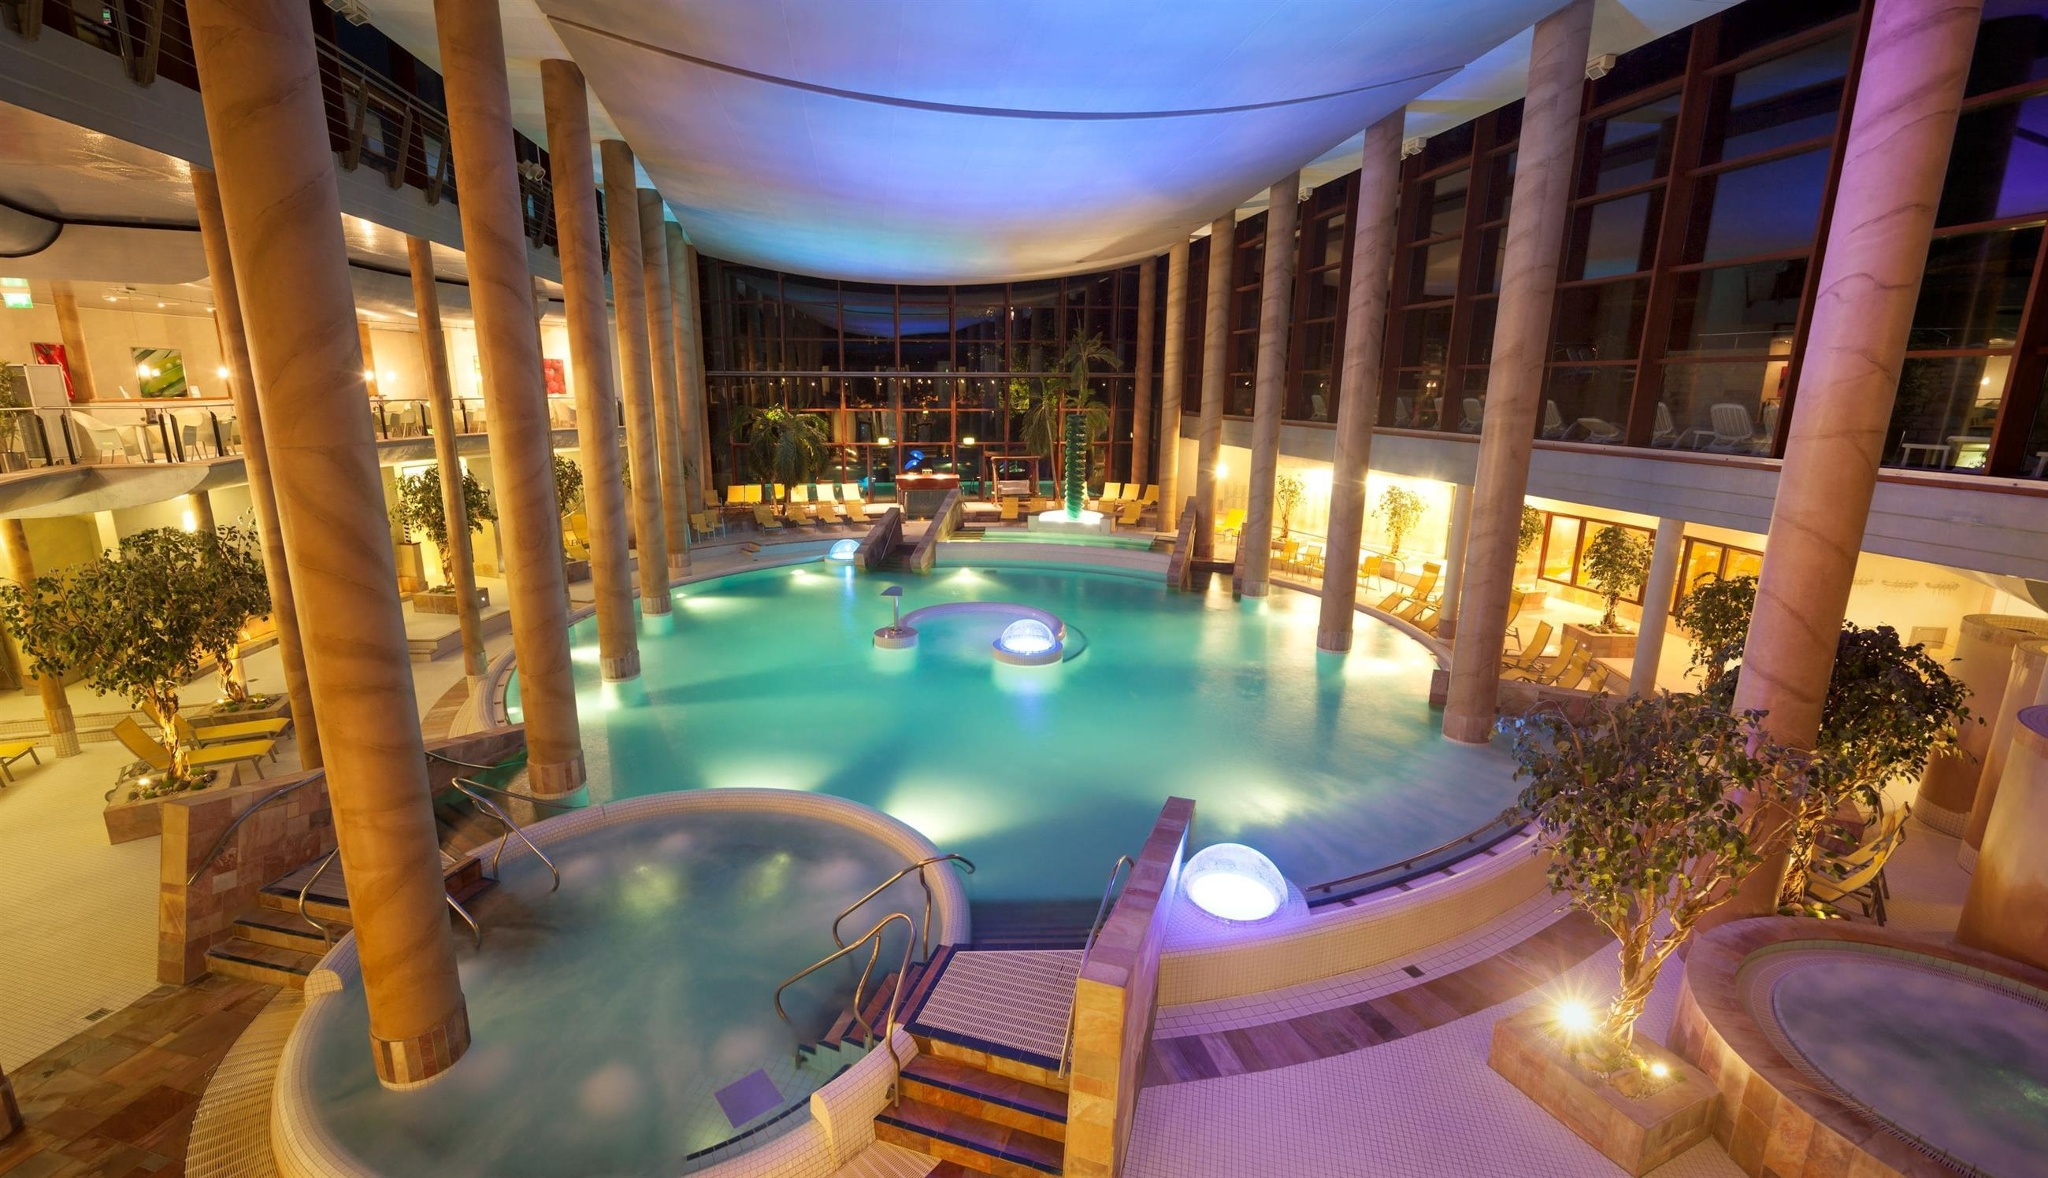 Korschenbroich in asia therme Home —